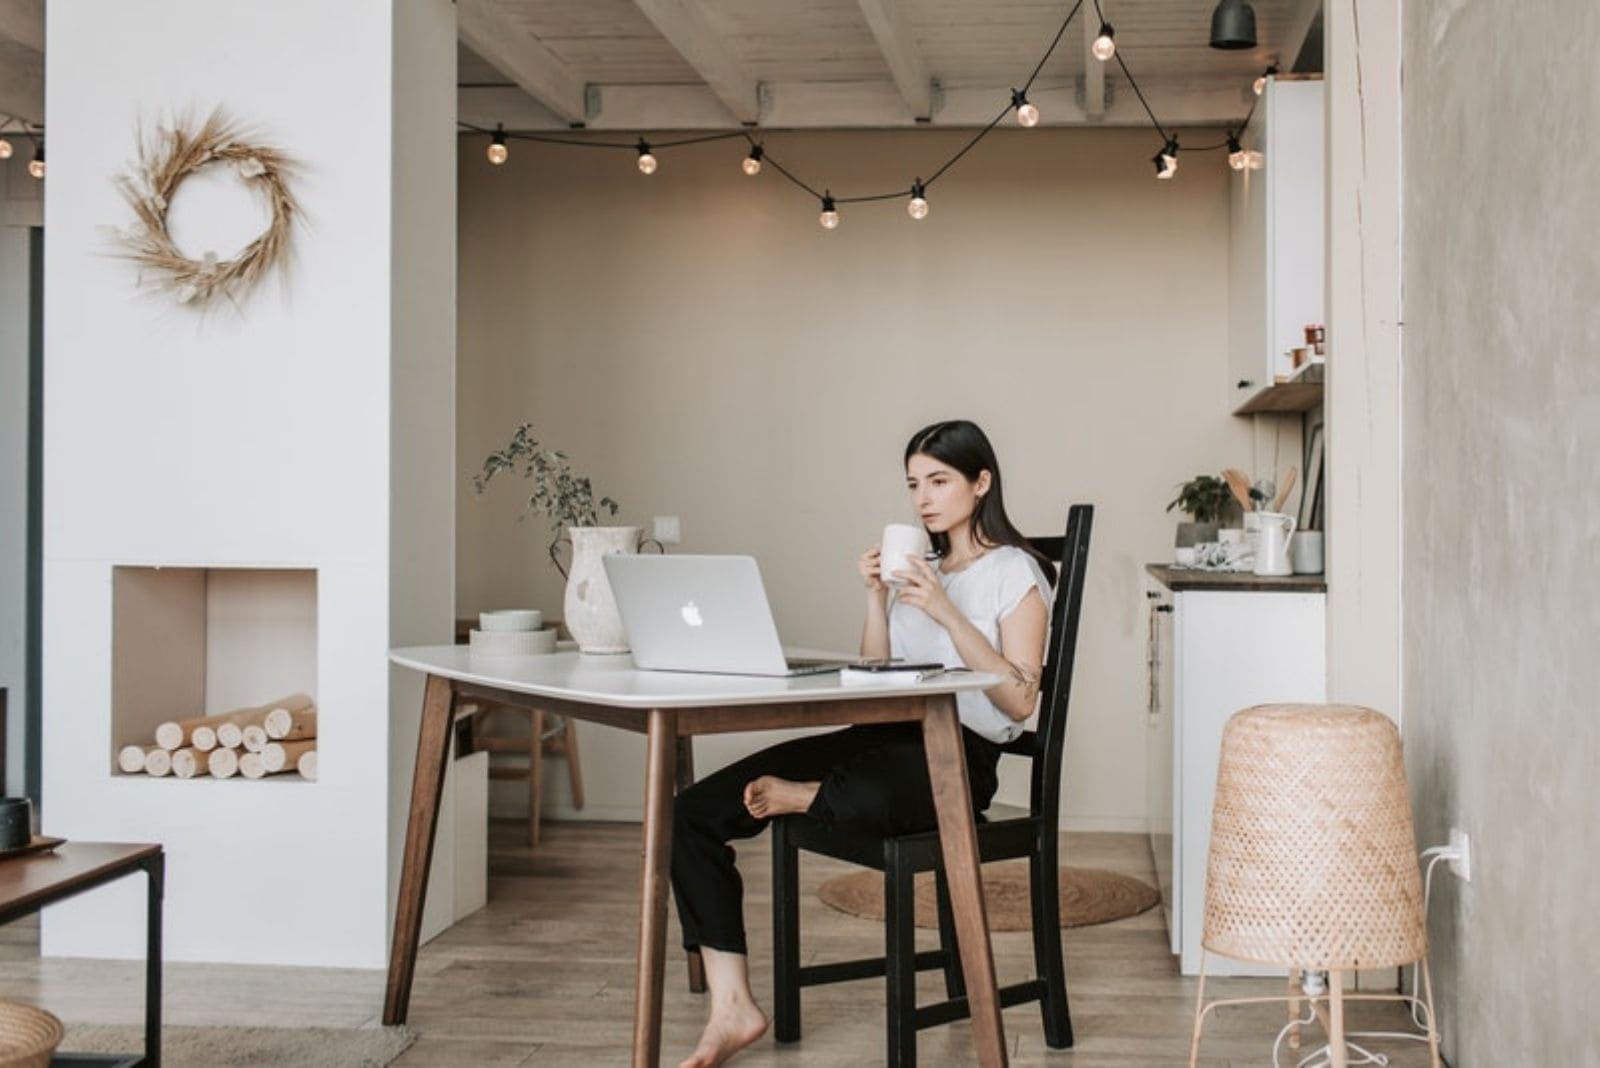 woman working at home drinking coffee with one foot rested on the chair